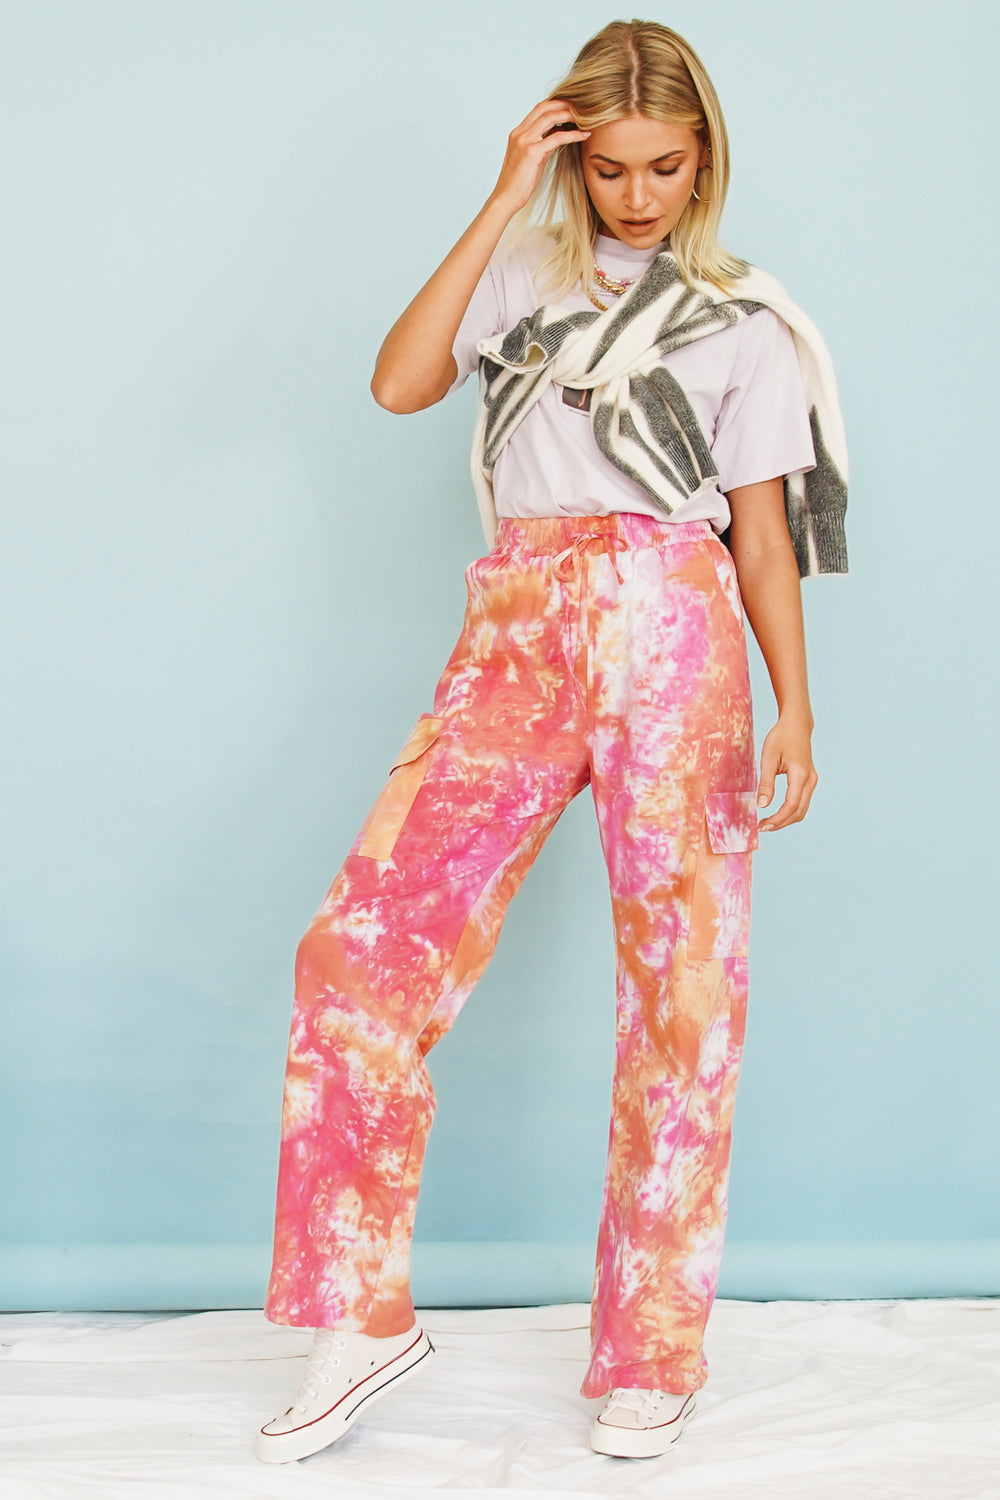 VRG GRL You've Got It Tie Dye Pants // Pink